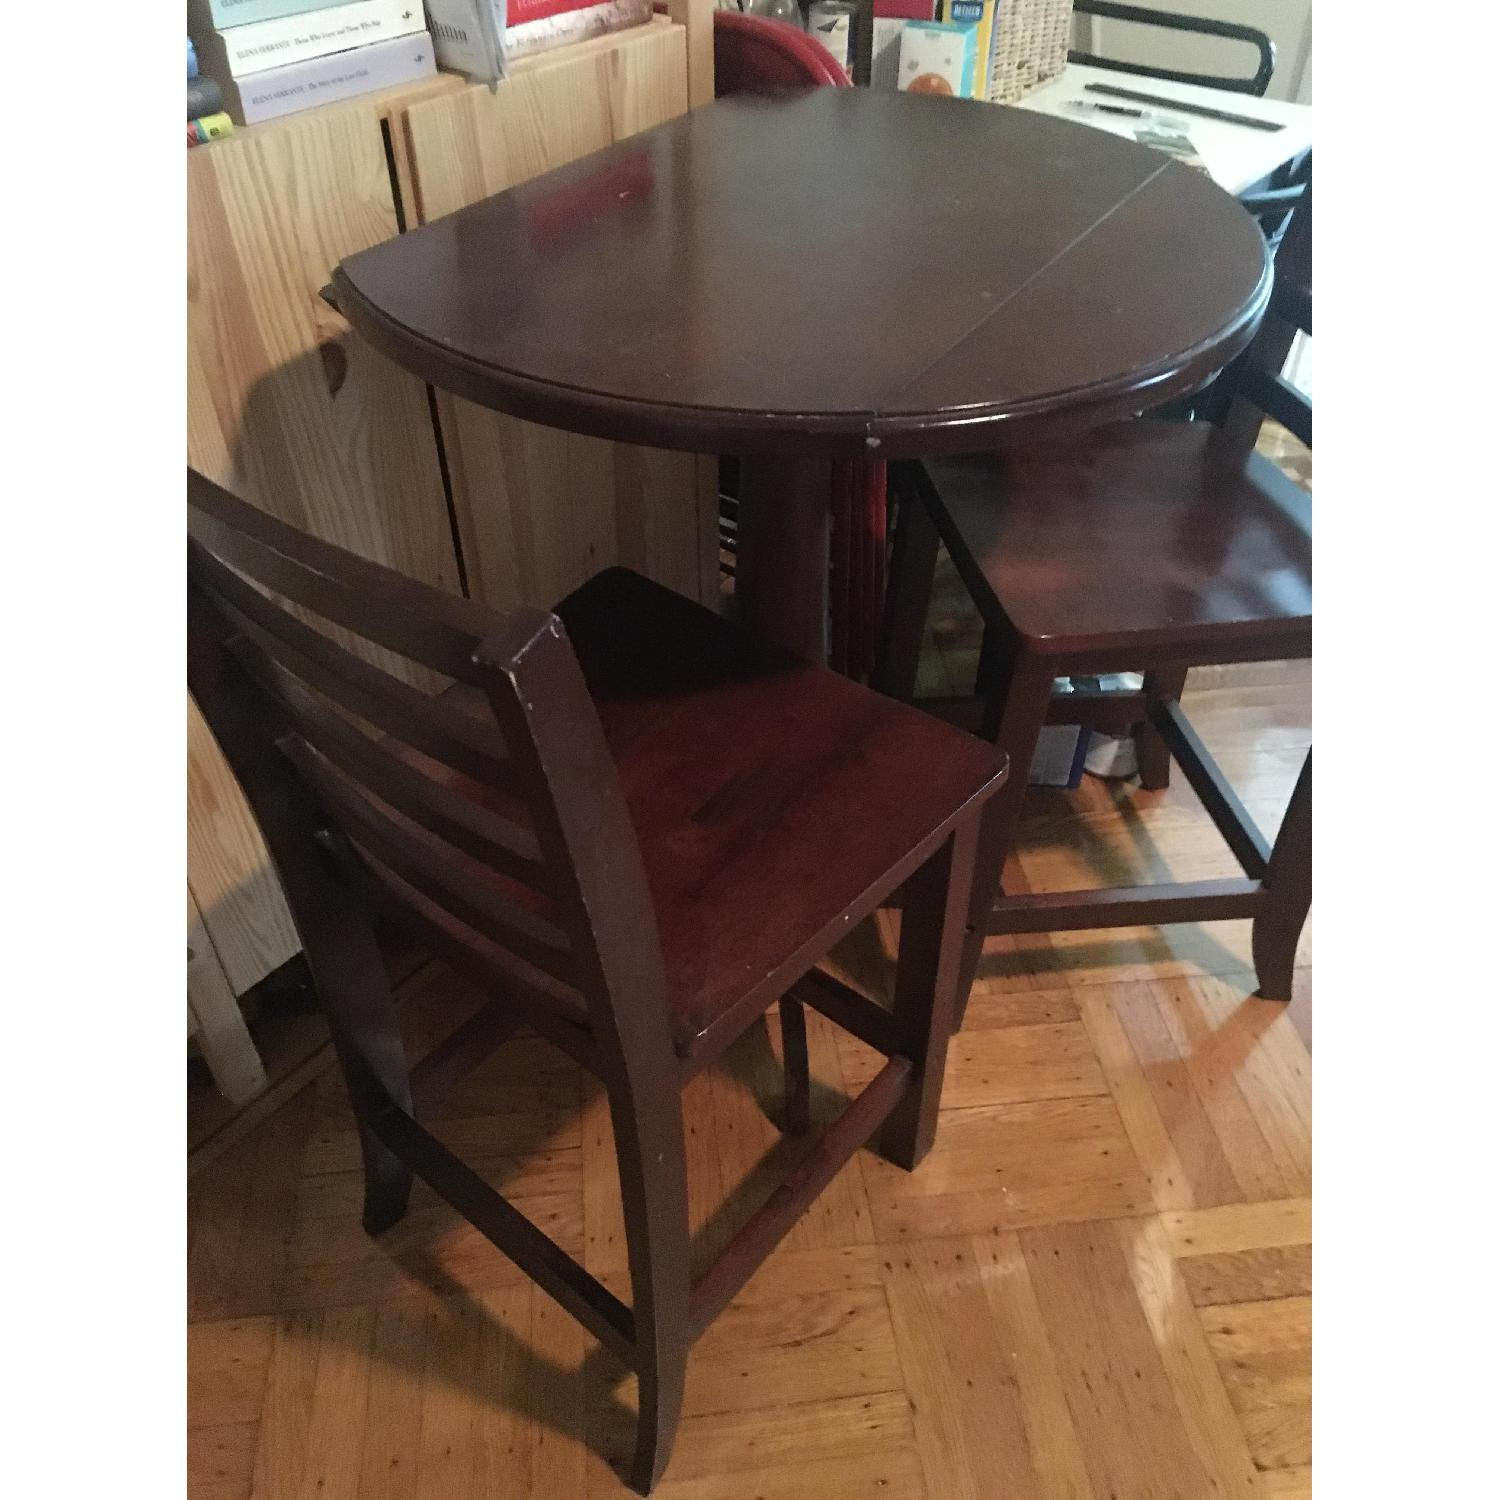 Wood Pub Table w/ 2 Chairs - image-4